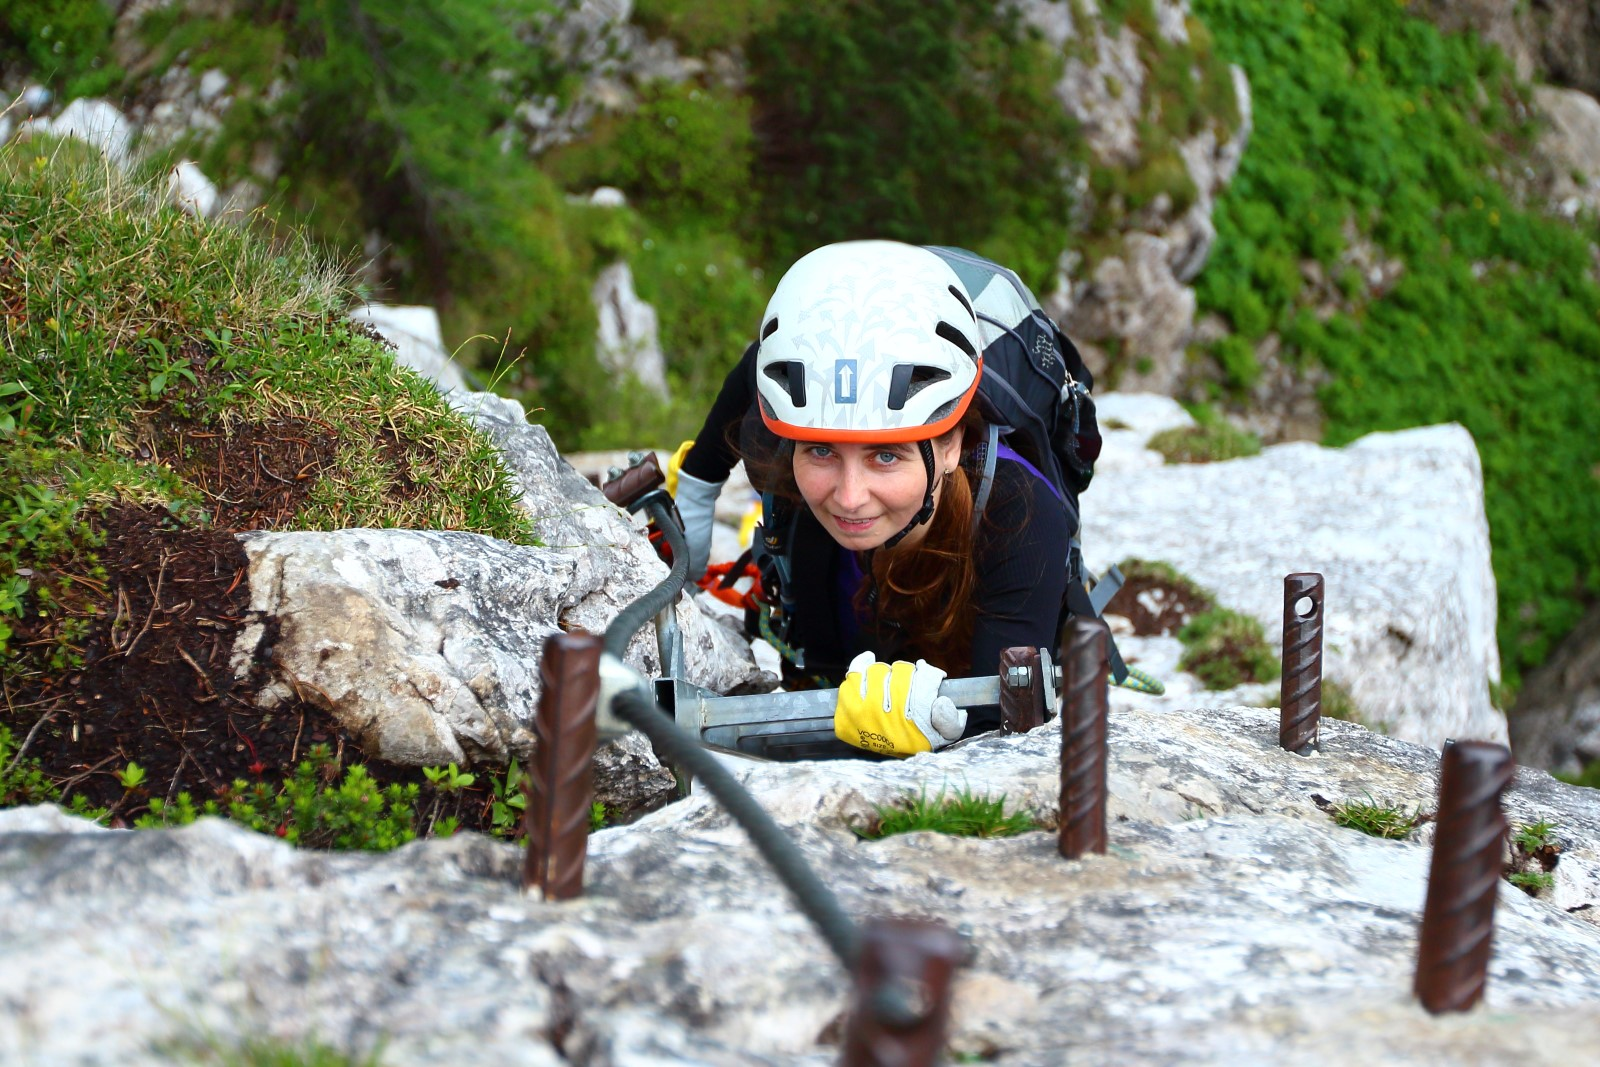 Klettersteig Intersport : Klettersteig intersport bergsteigen